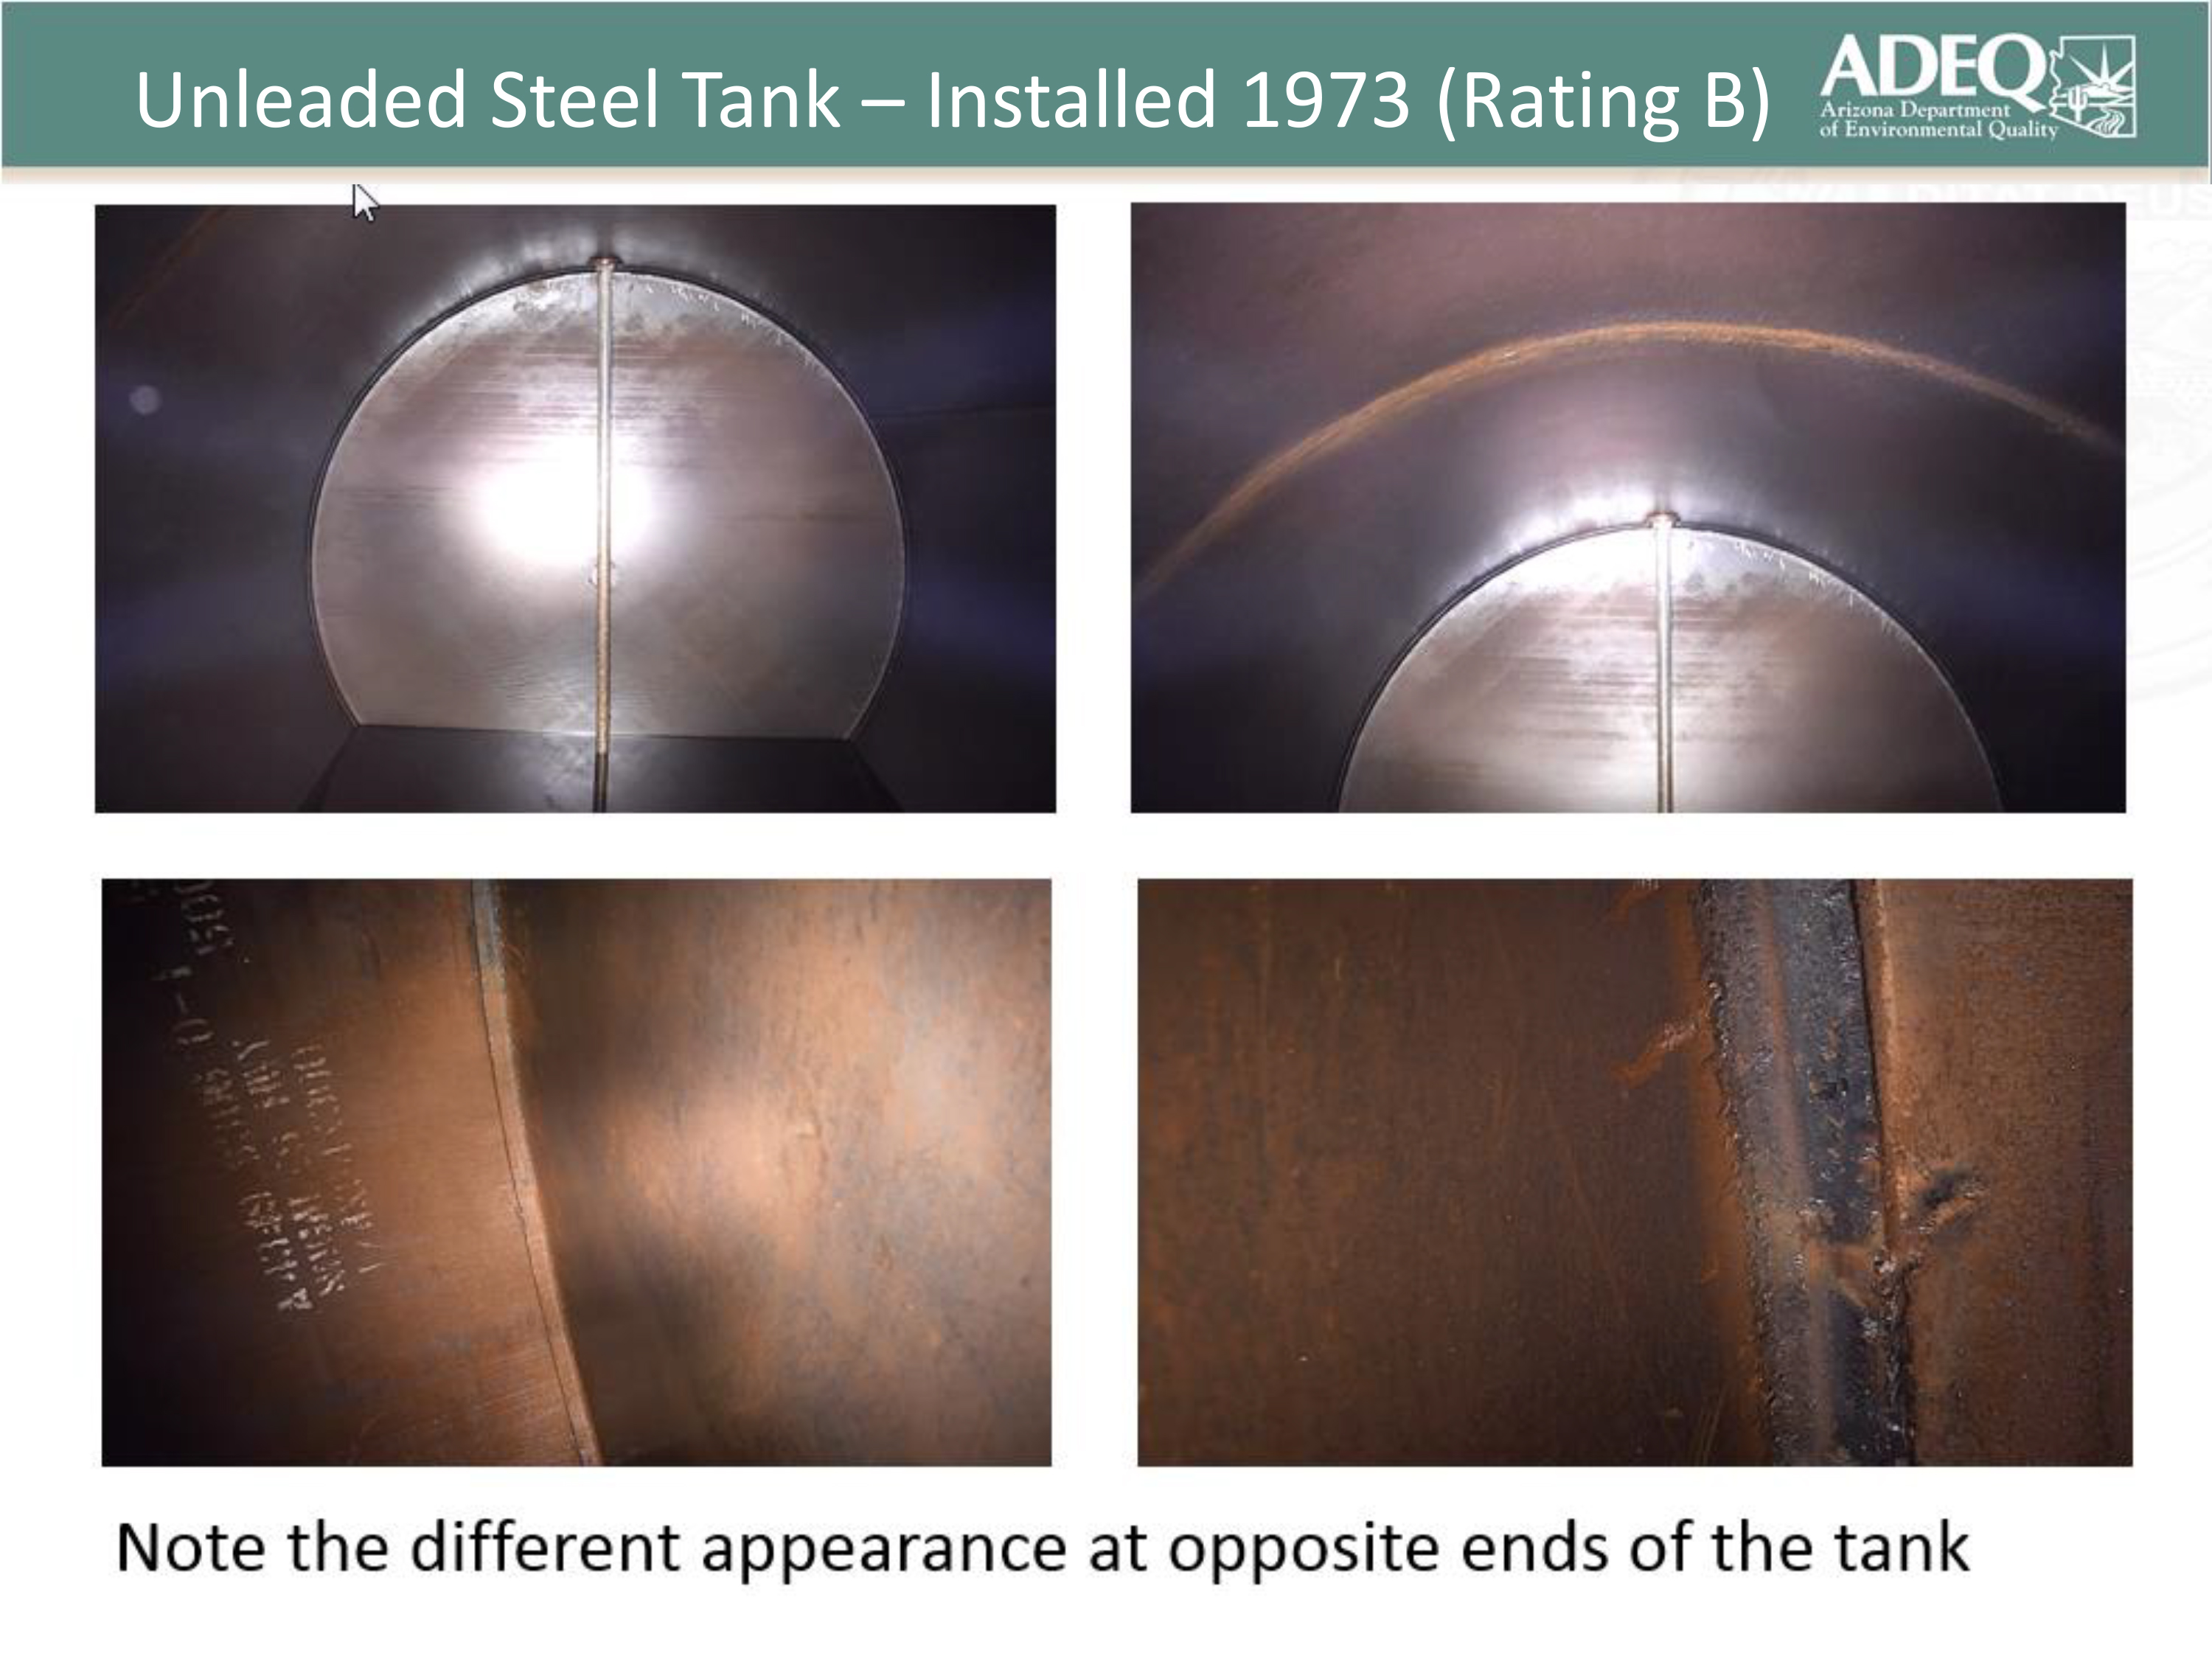 Unleaded Steel Tank Installed 1973 with B Rating